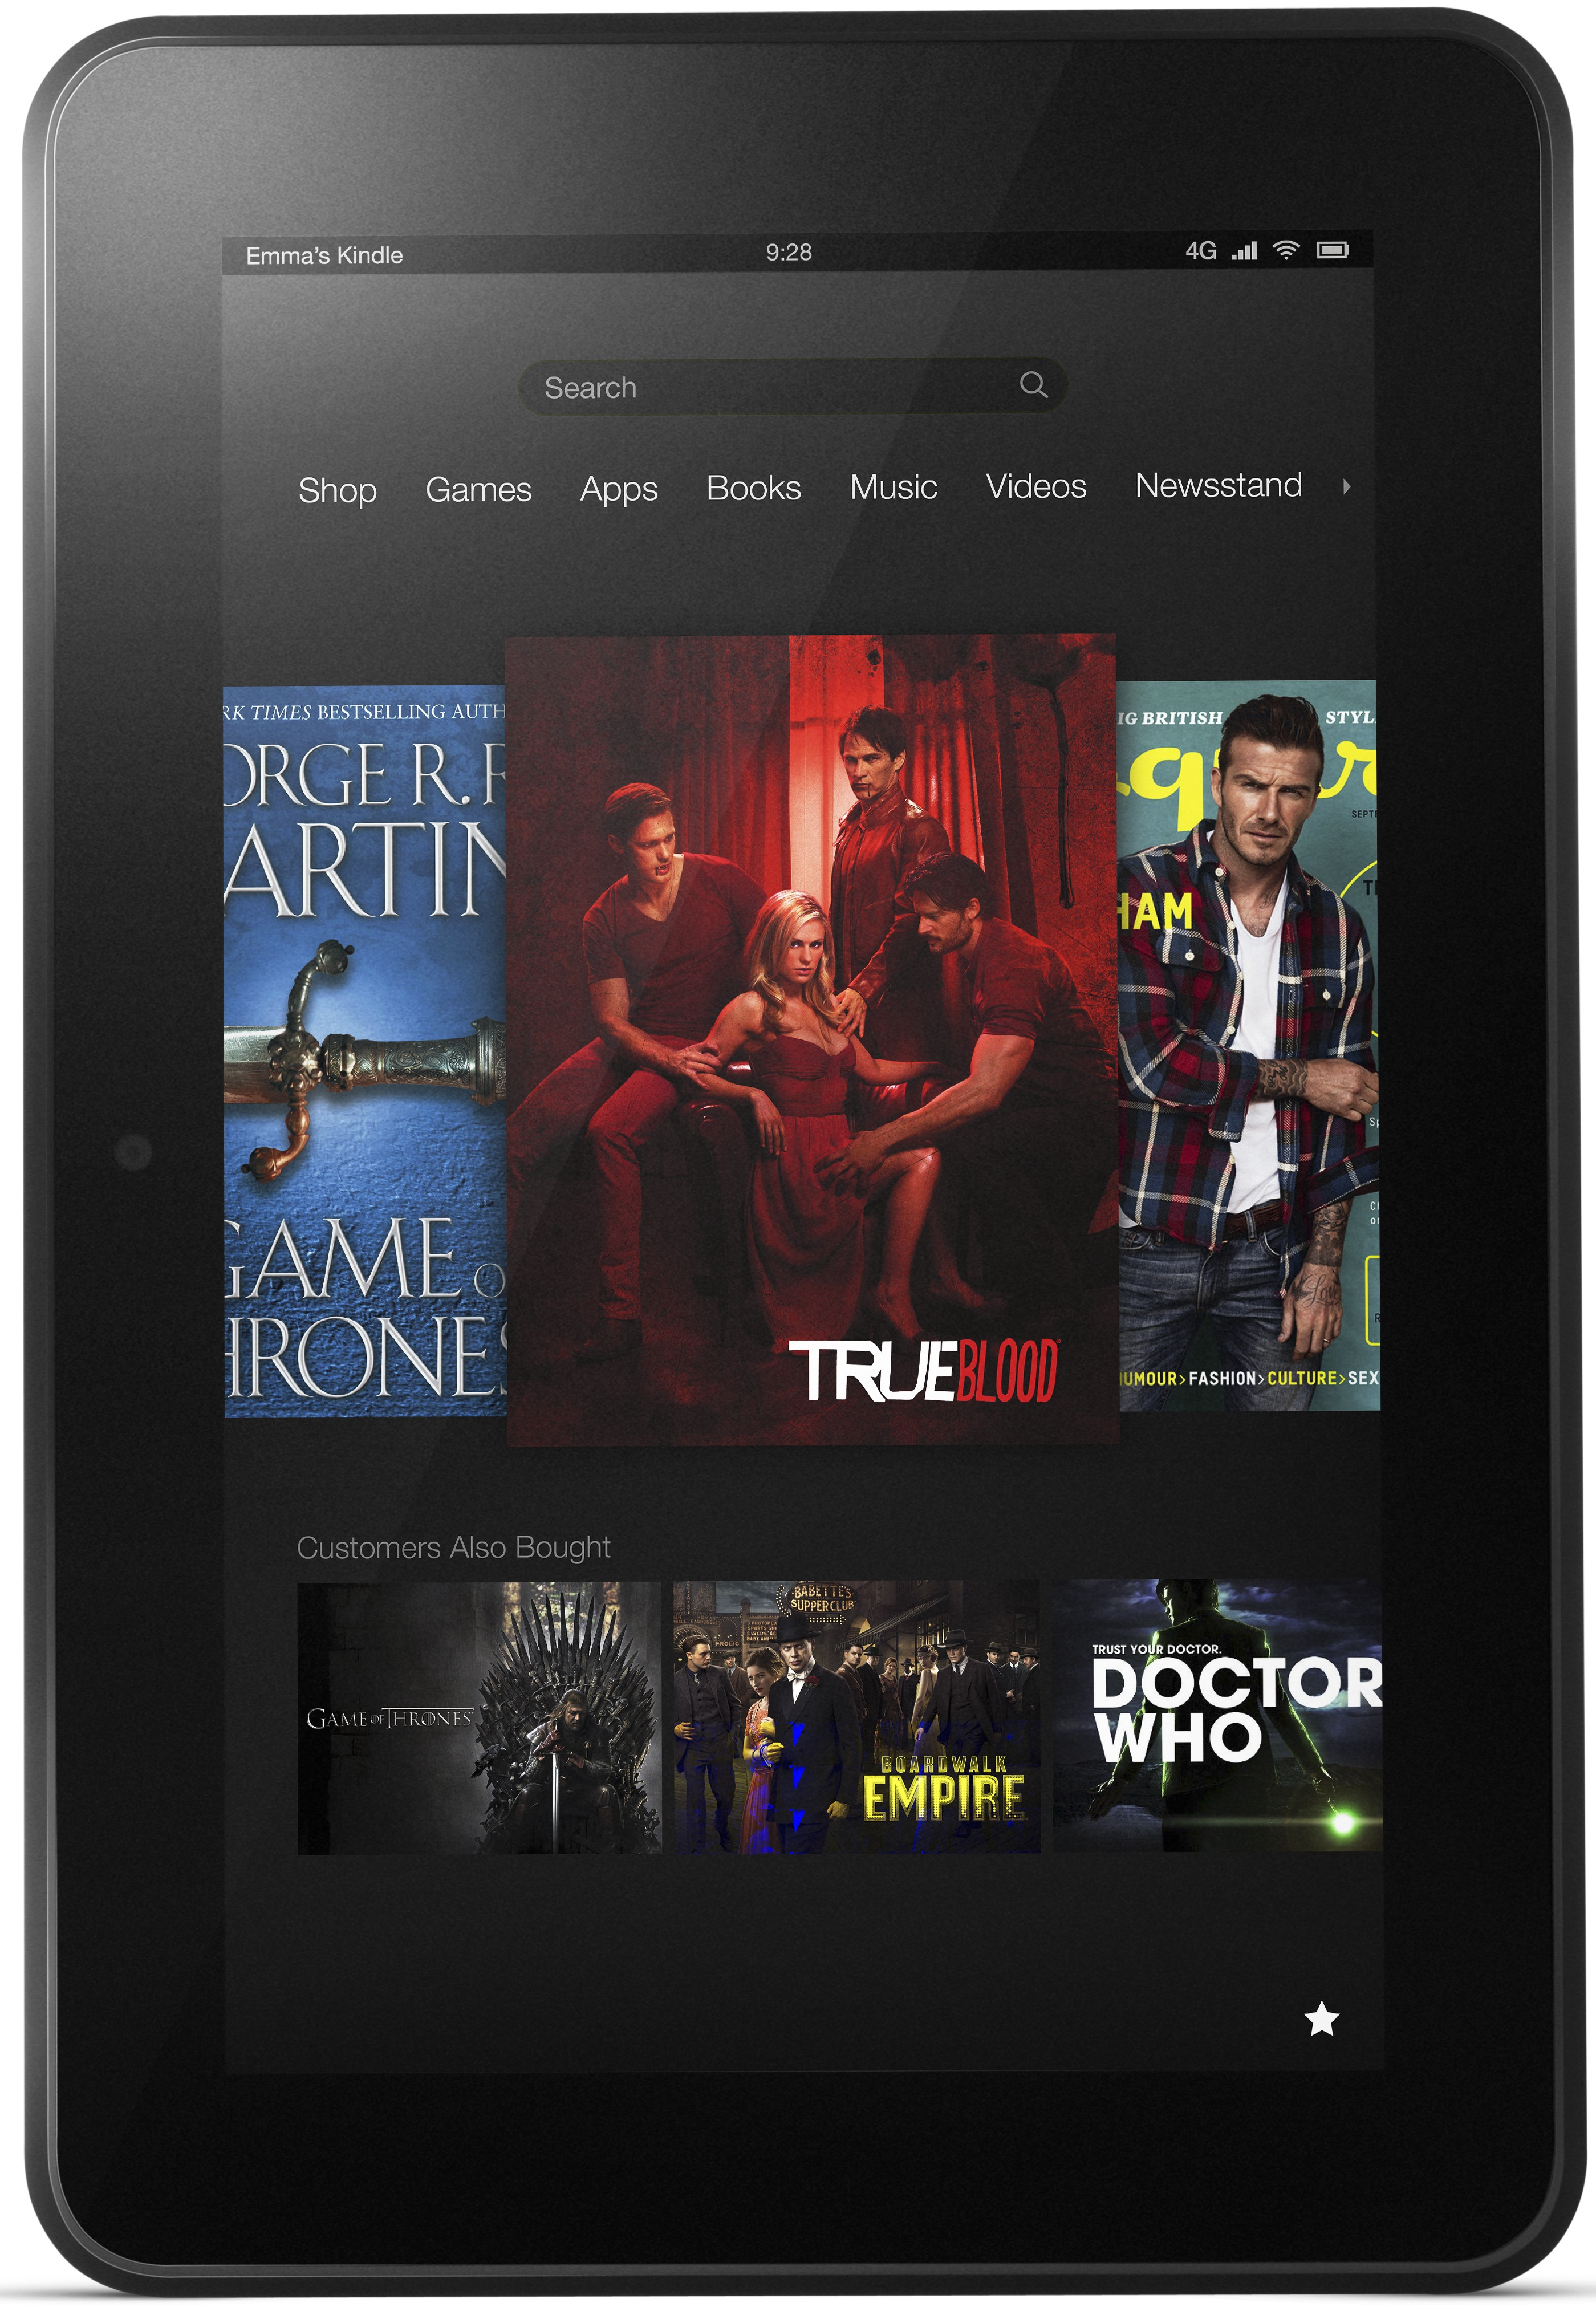 Amazon Kindle Fire HD 8.9 4G LTE